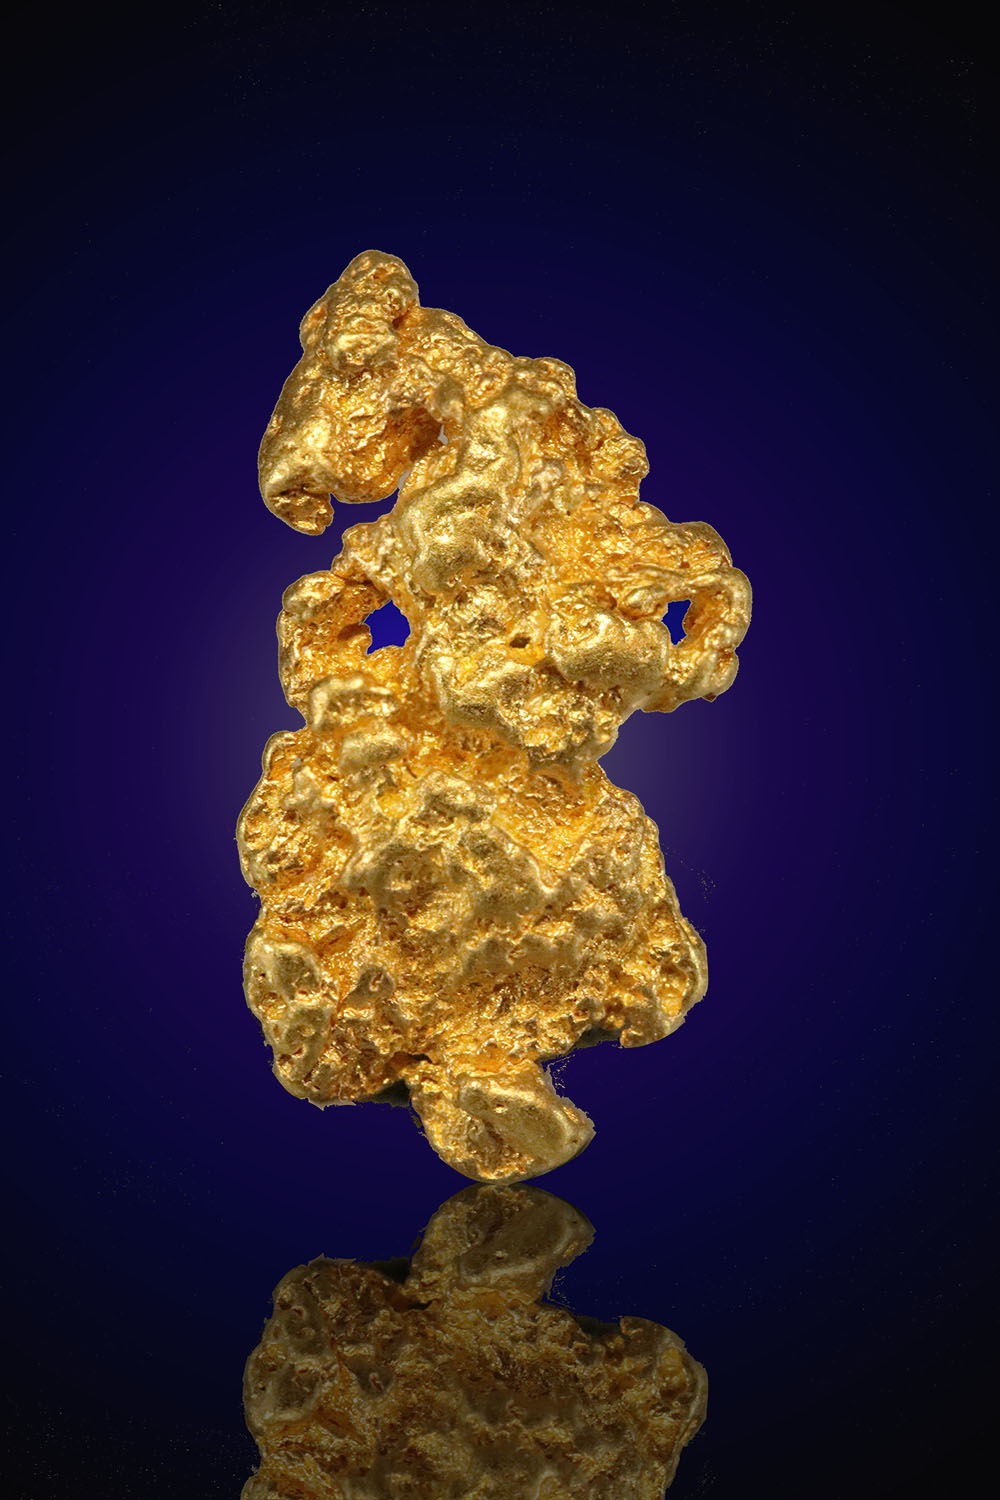 Nevada Gold Nugget - Elongated and Heavy Texture